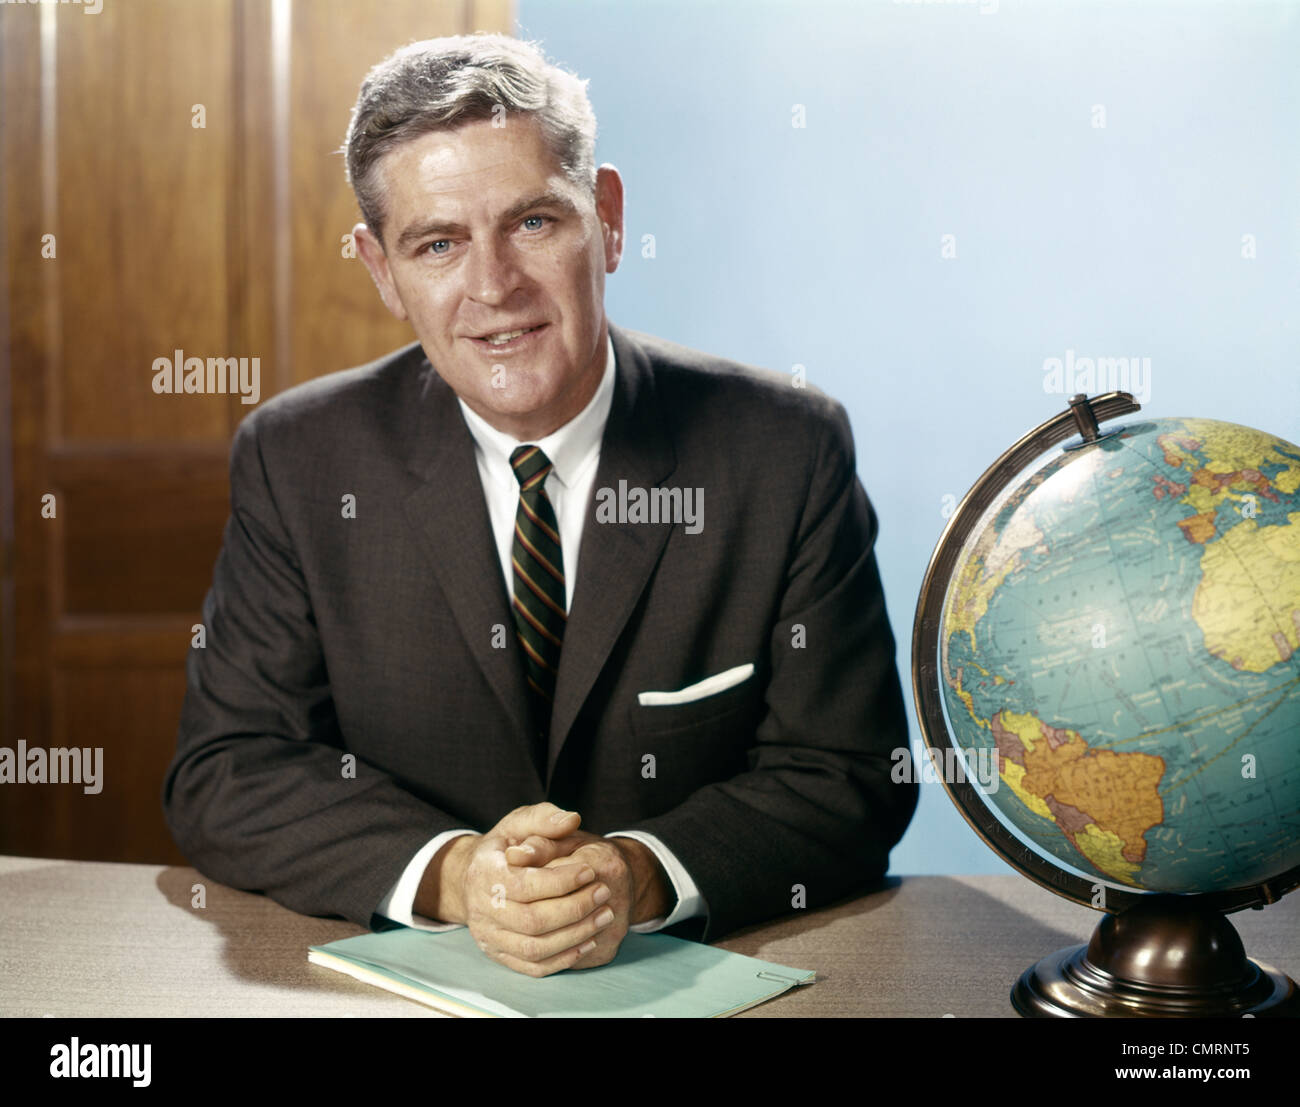 PORTRAIT MAN BUSINESSMAN SITTING AT DESK NEXT TO GLOBE OF THE EARTH OFFICE INDOOR - Stock Image